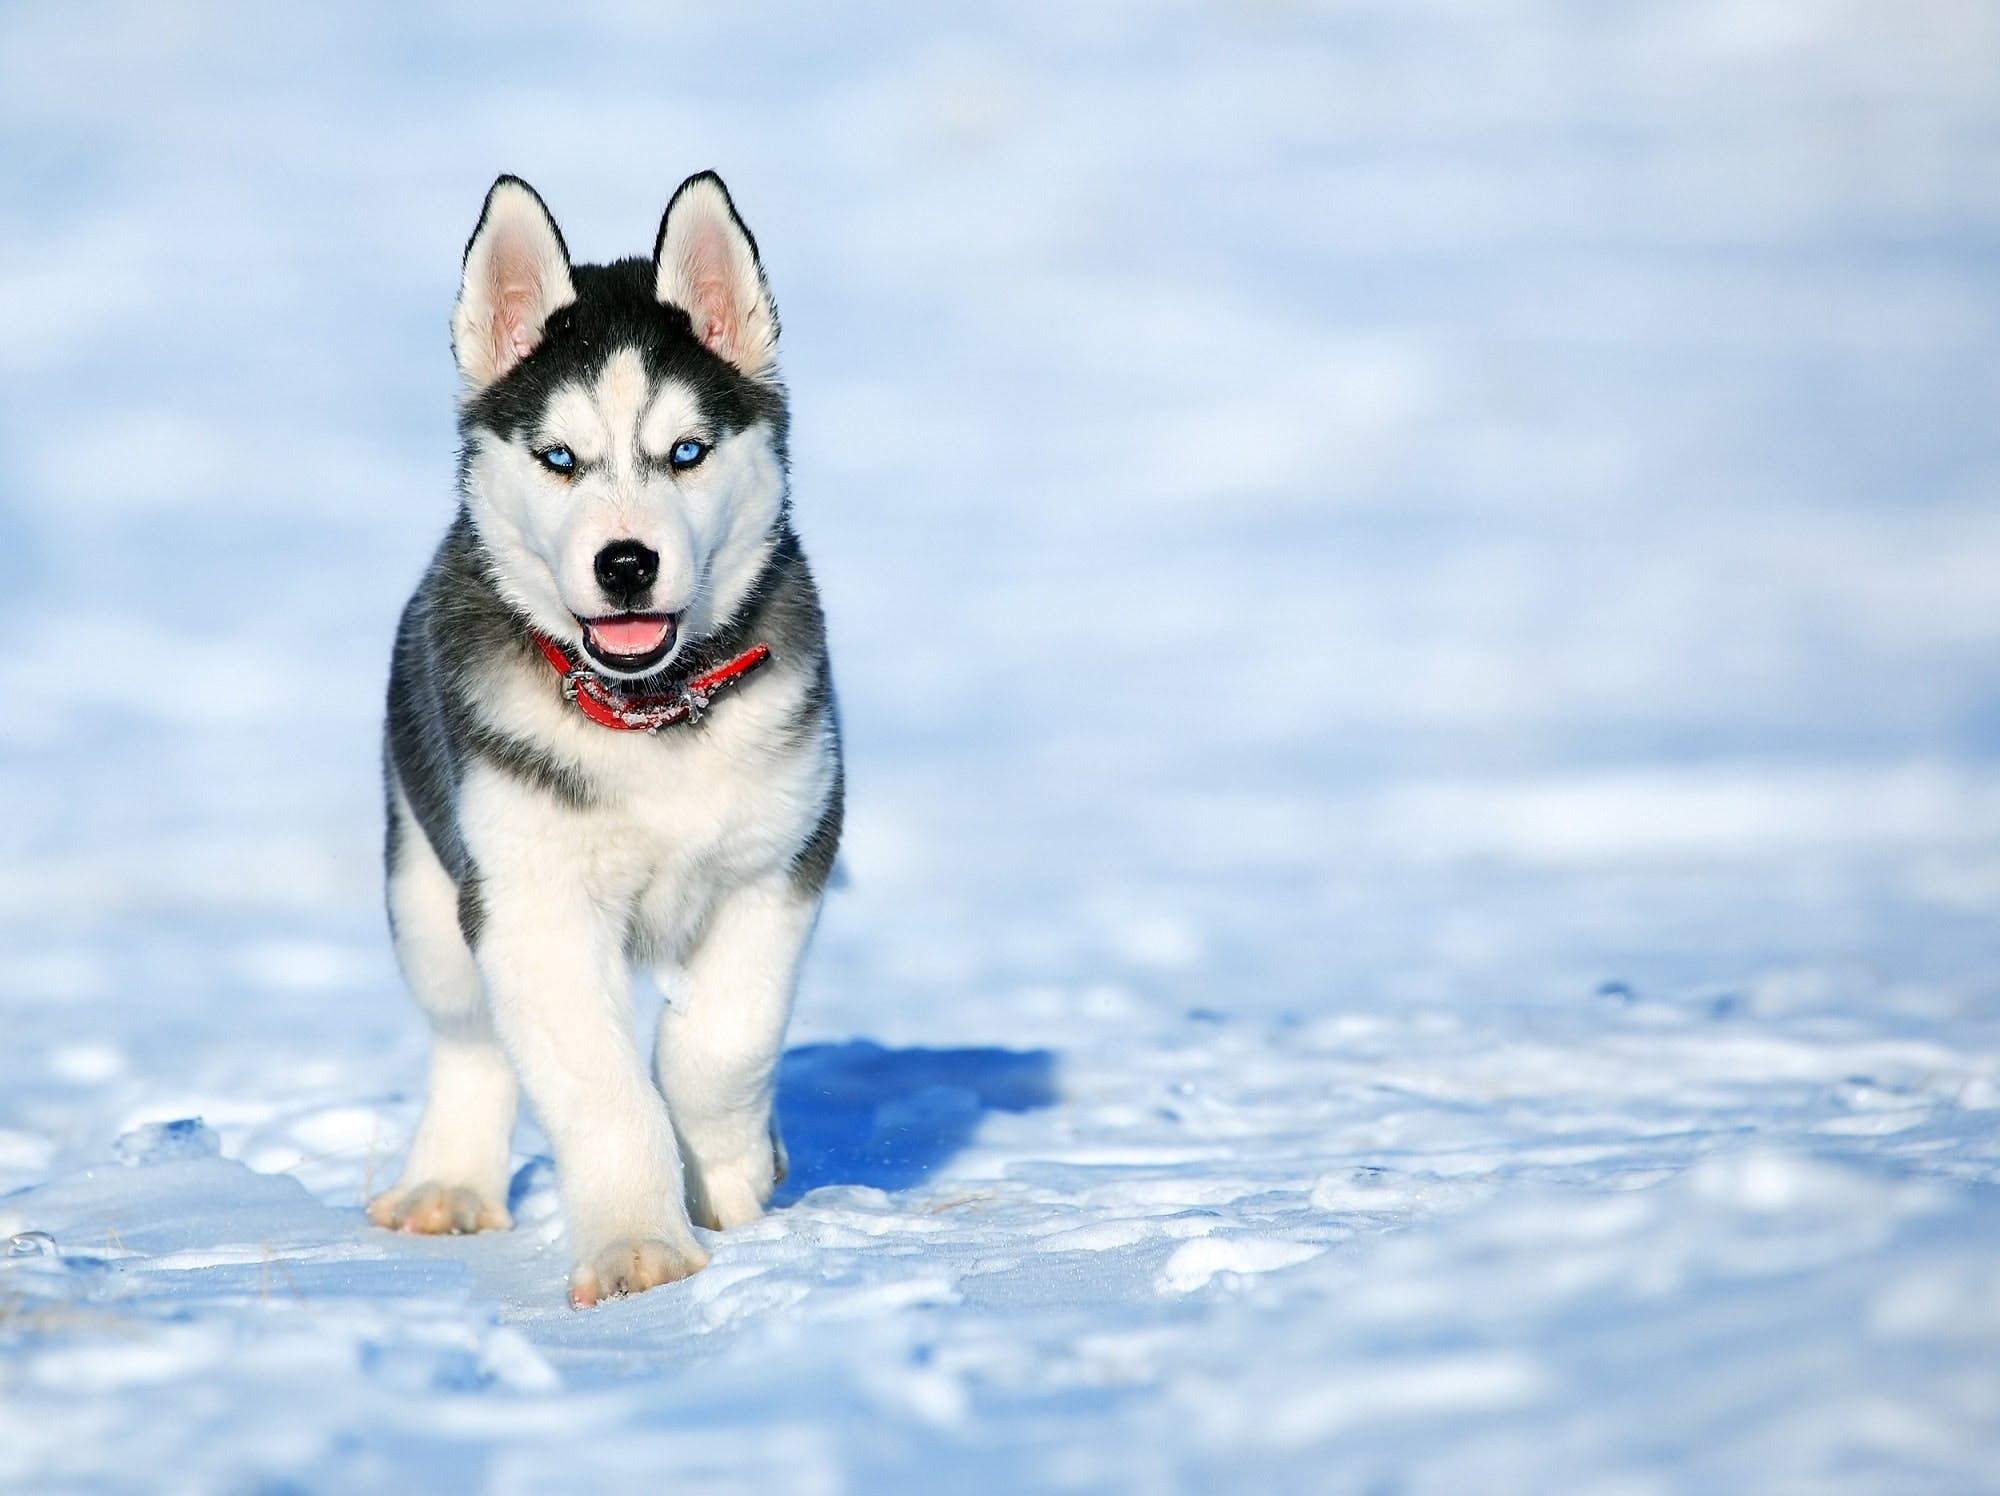 The dog Loki the Wolfdog is out in the snow one winter day